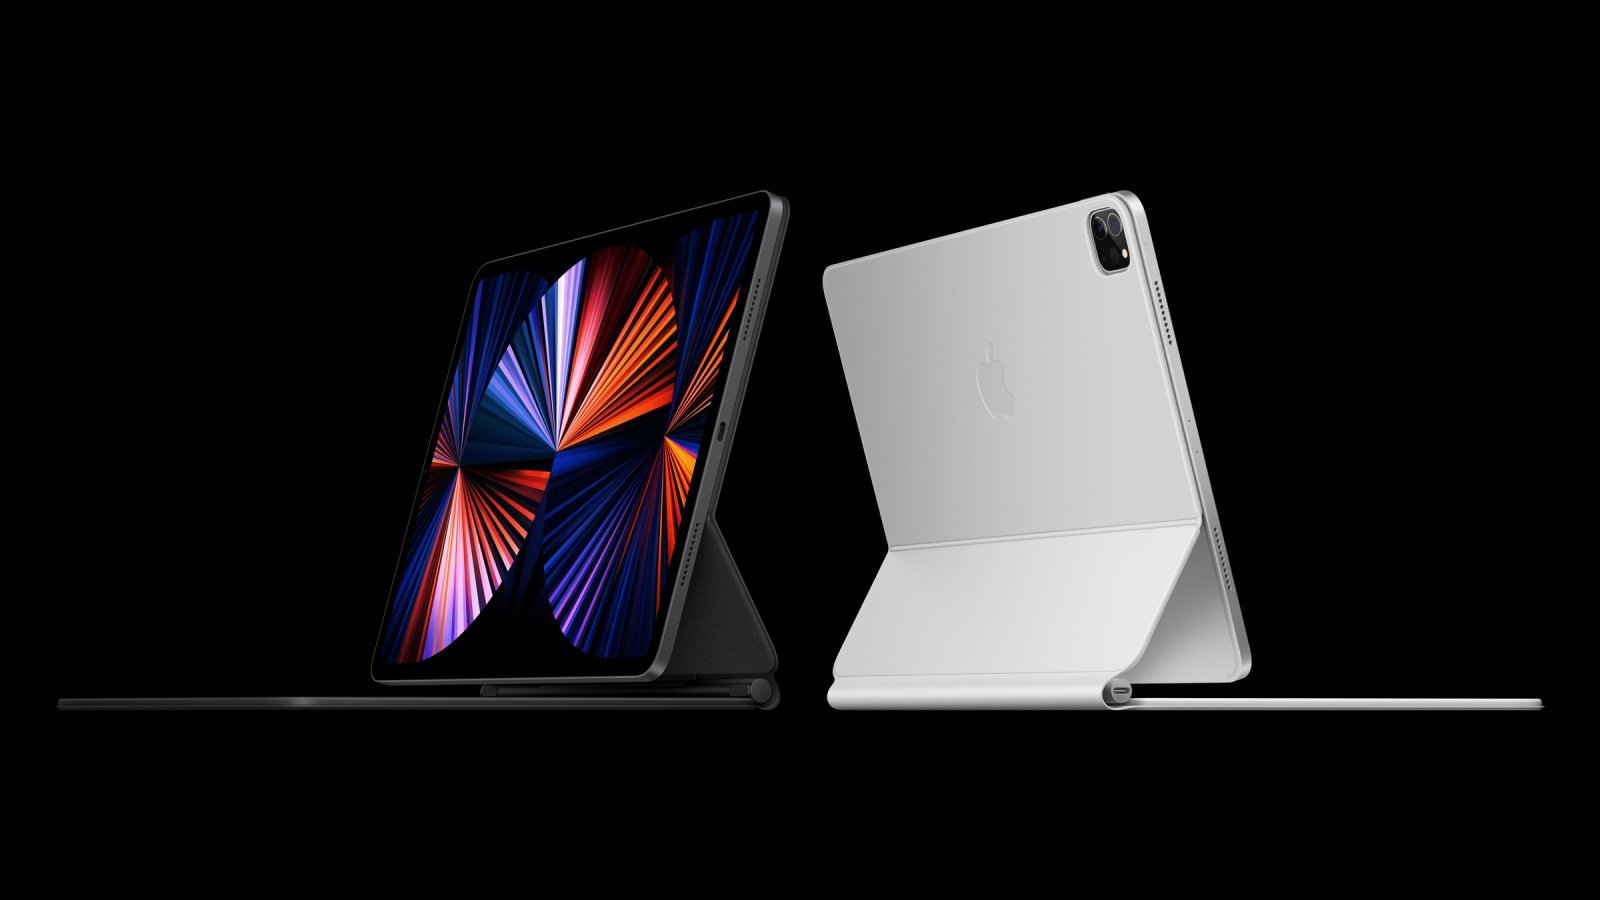 Warning: There Are 3 Versions of the 5G Apple iPad Pro